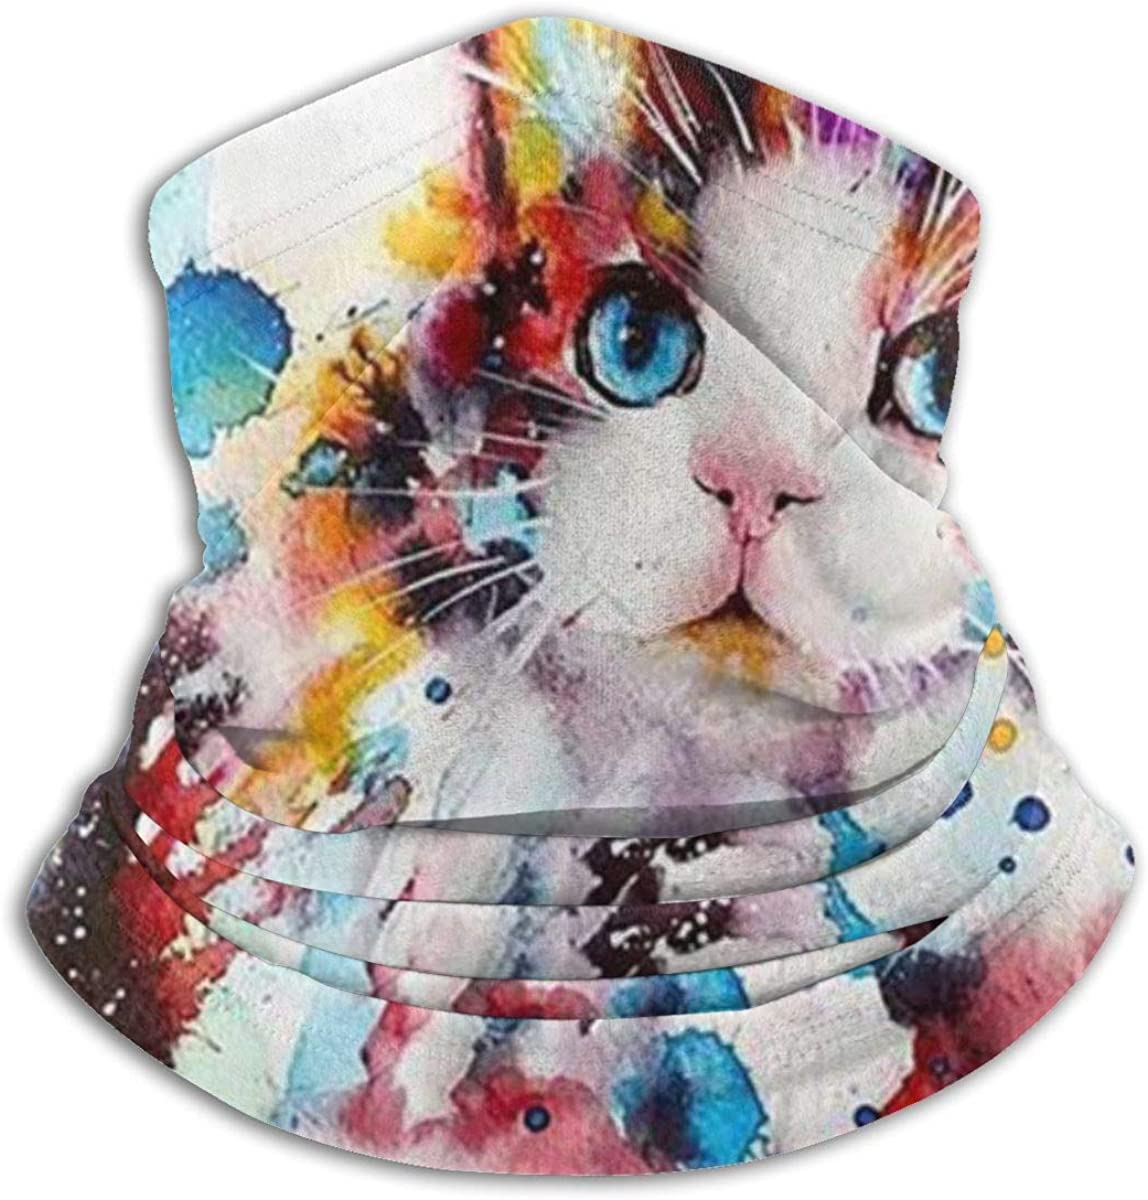 Cat Abstract Paint Splatter Casual Protección solar Gorro máscara pasamontañas para bandana antipolvo